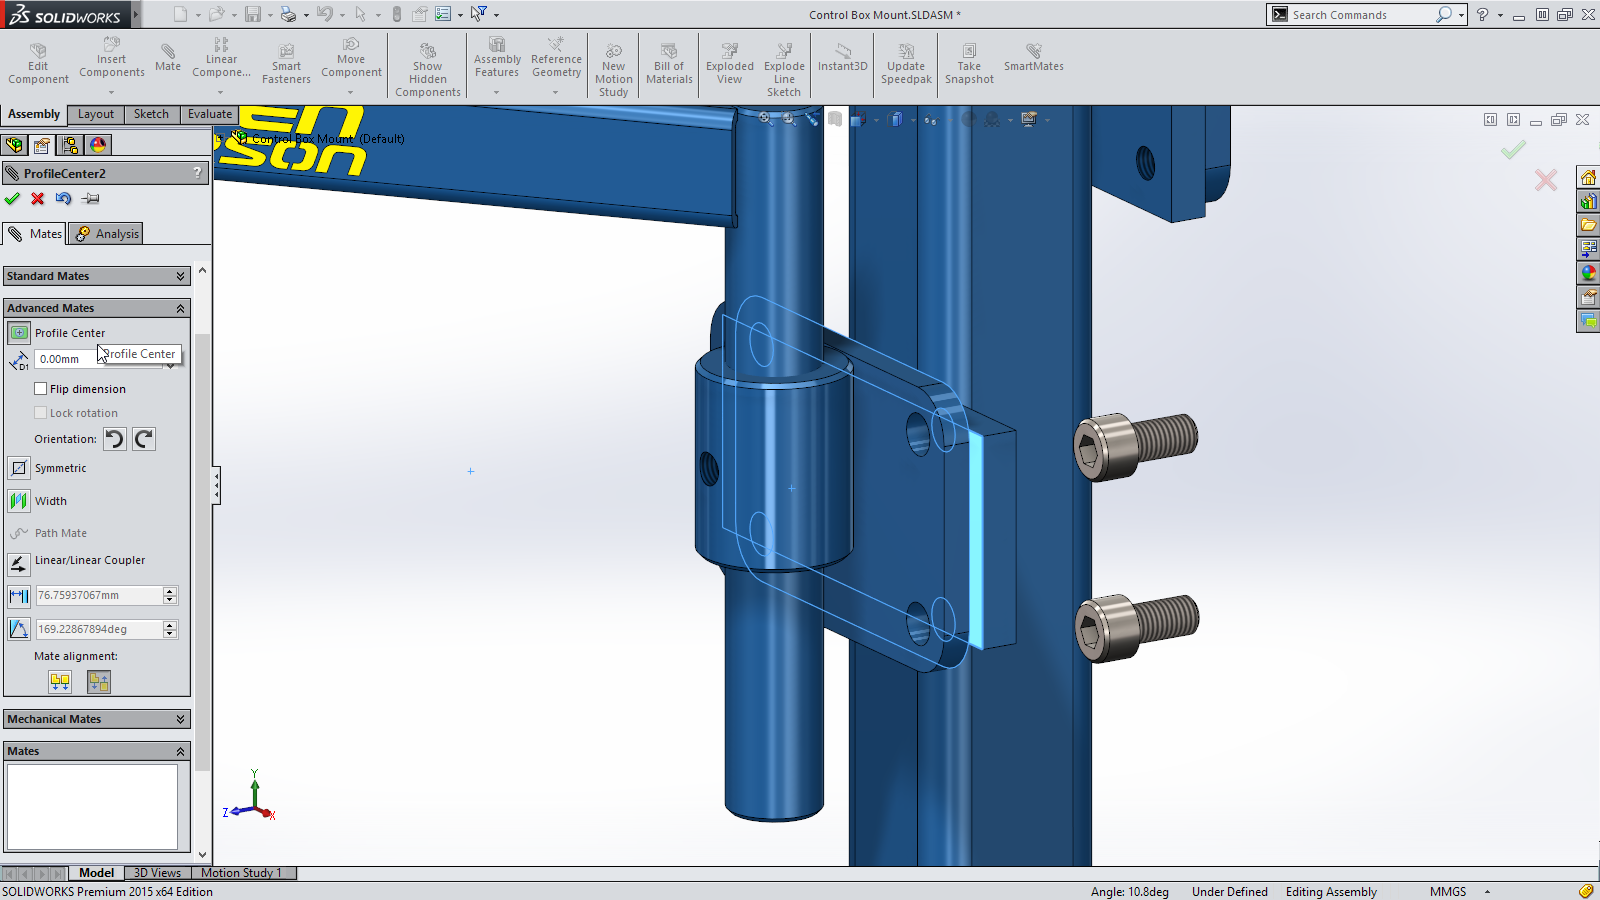 Sneak Peek: 15 Features coming in SOLIDWORKS 2015 – Profile Center Mate